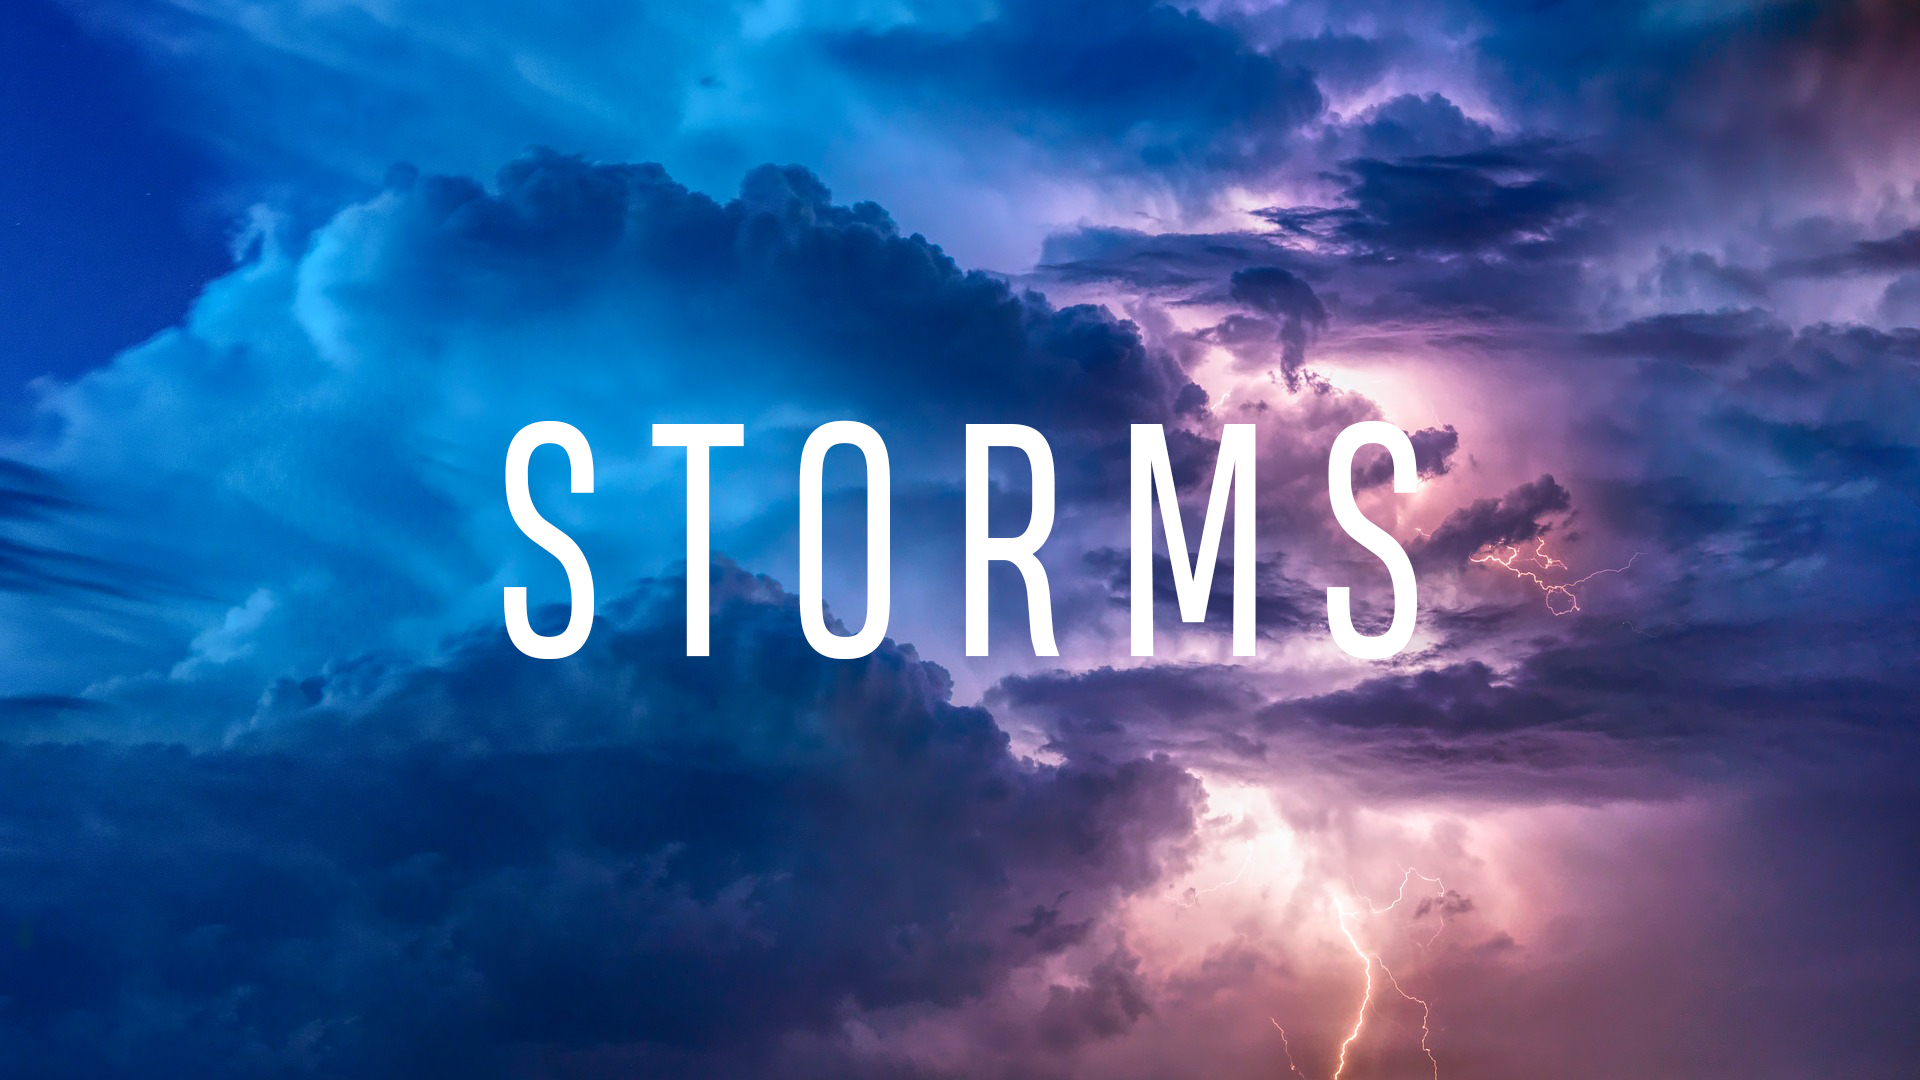 3-storms